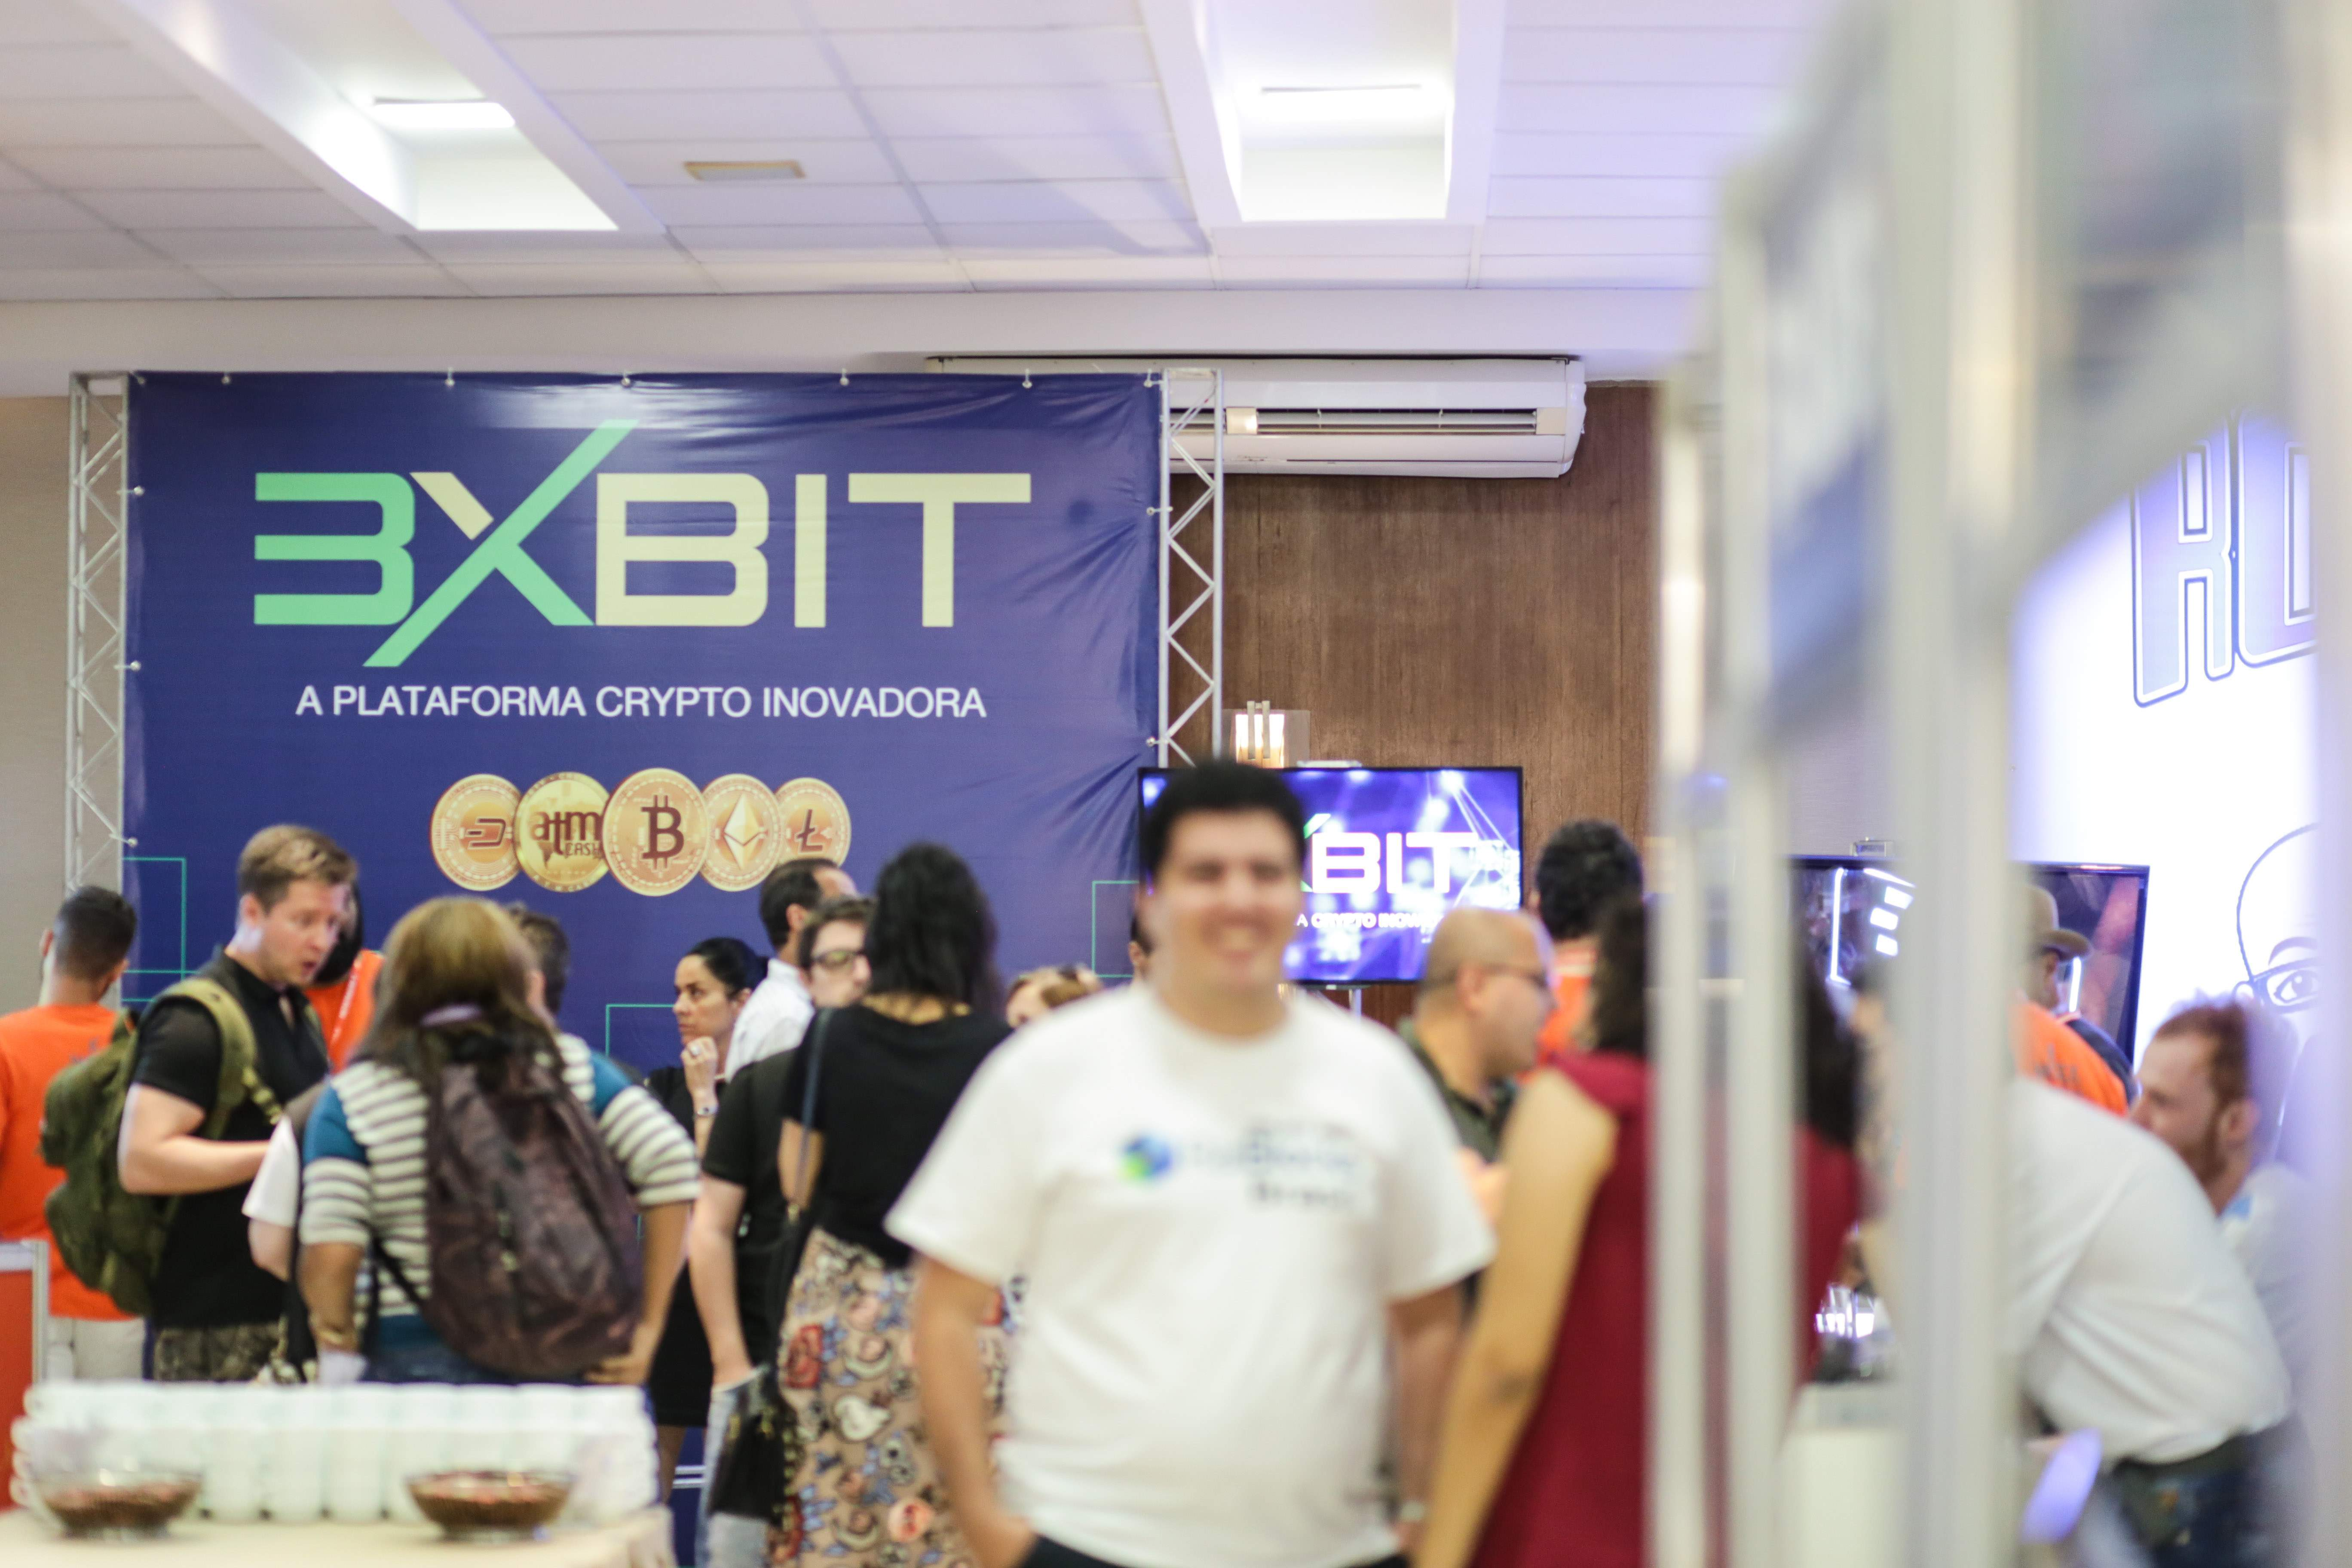 Estande da 3xBit na Bitconf Summer Edition 2018 (Foto: Marília Camelo/Portal do Bitcoin)